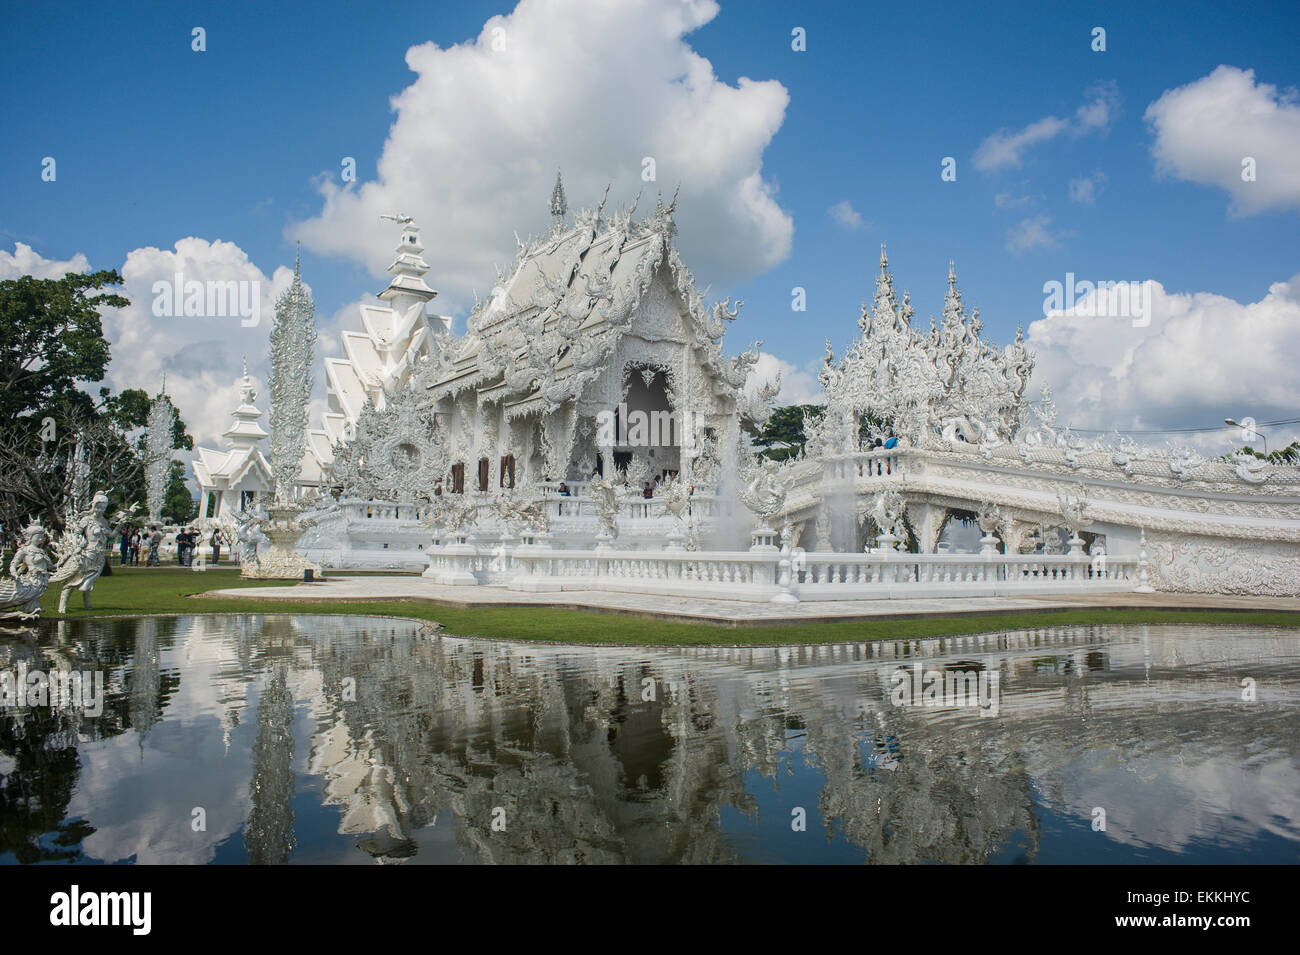 Wat Rong Khun better known to foreigners as the White Temple, is a contemporary Art Exhibit in the form of a Buddhist Stock Photo